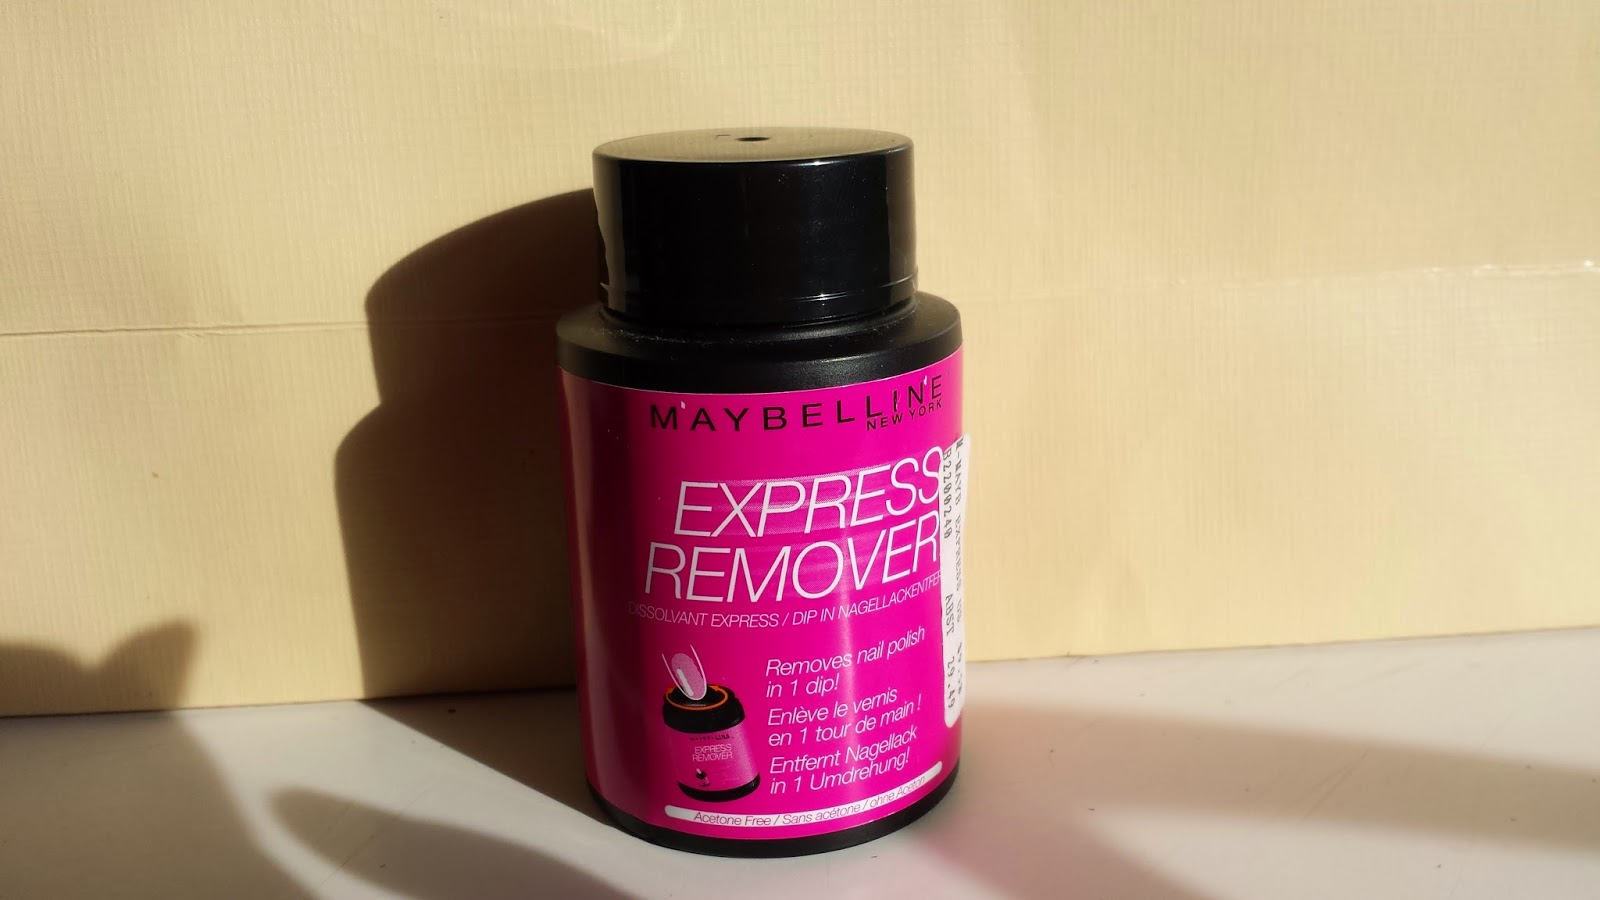 Maybelline New York Express Remover - www.modenmakeup.com